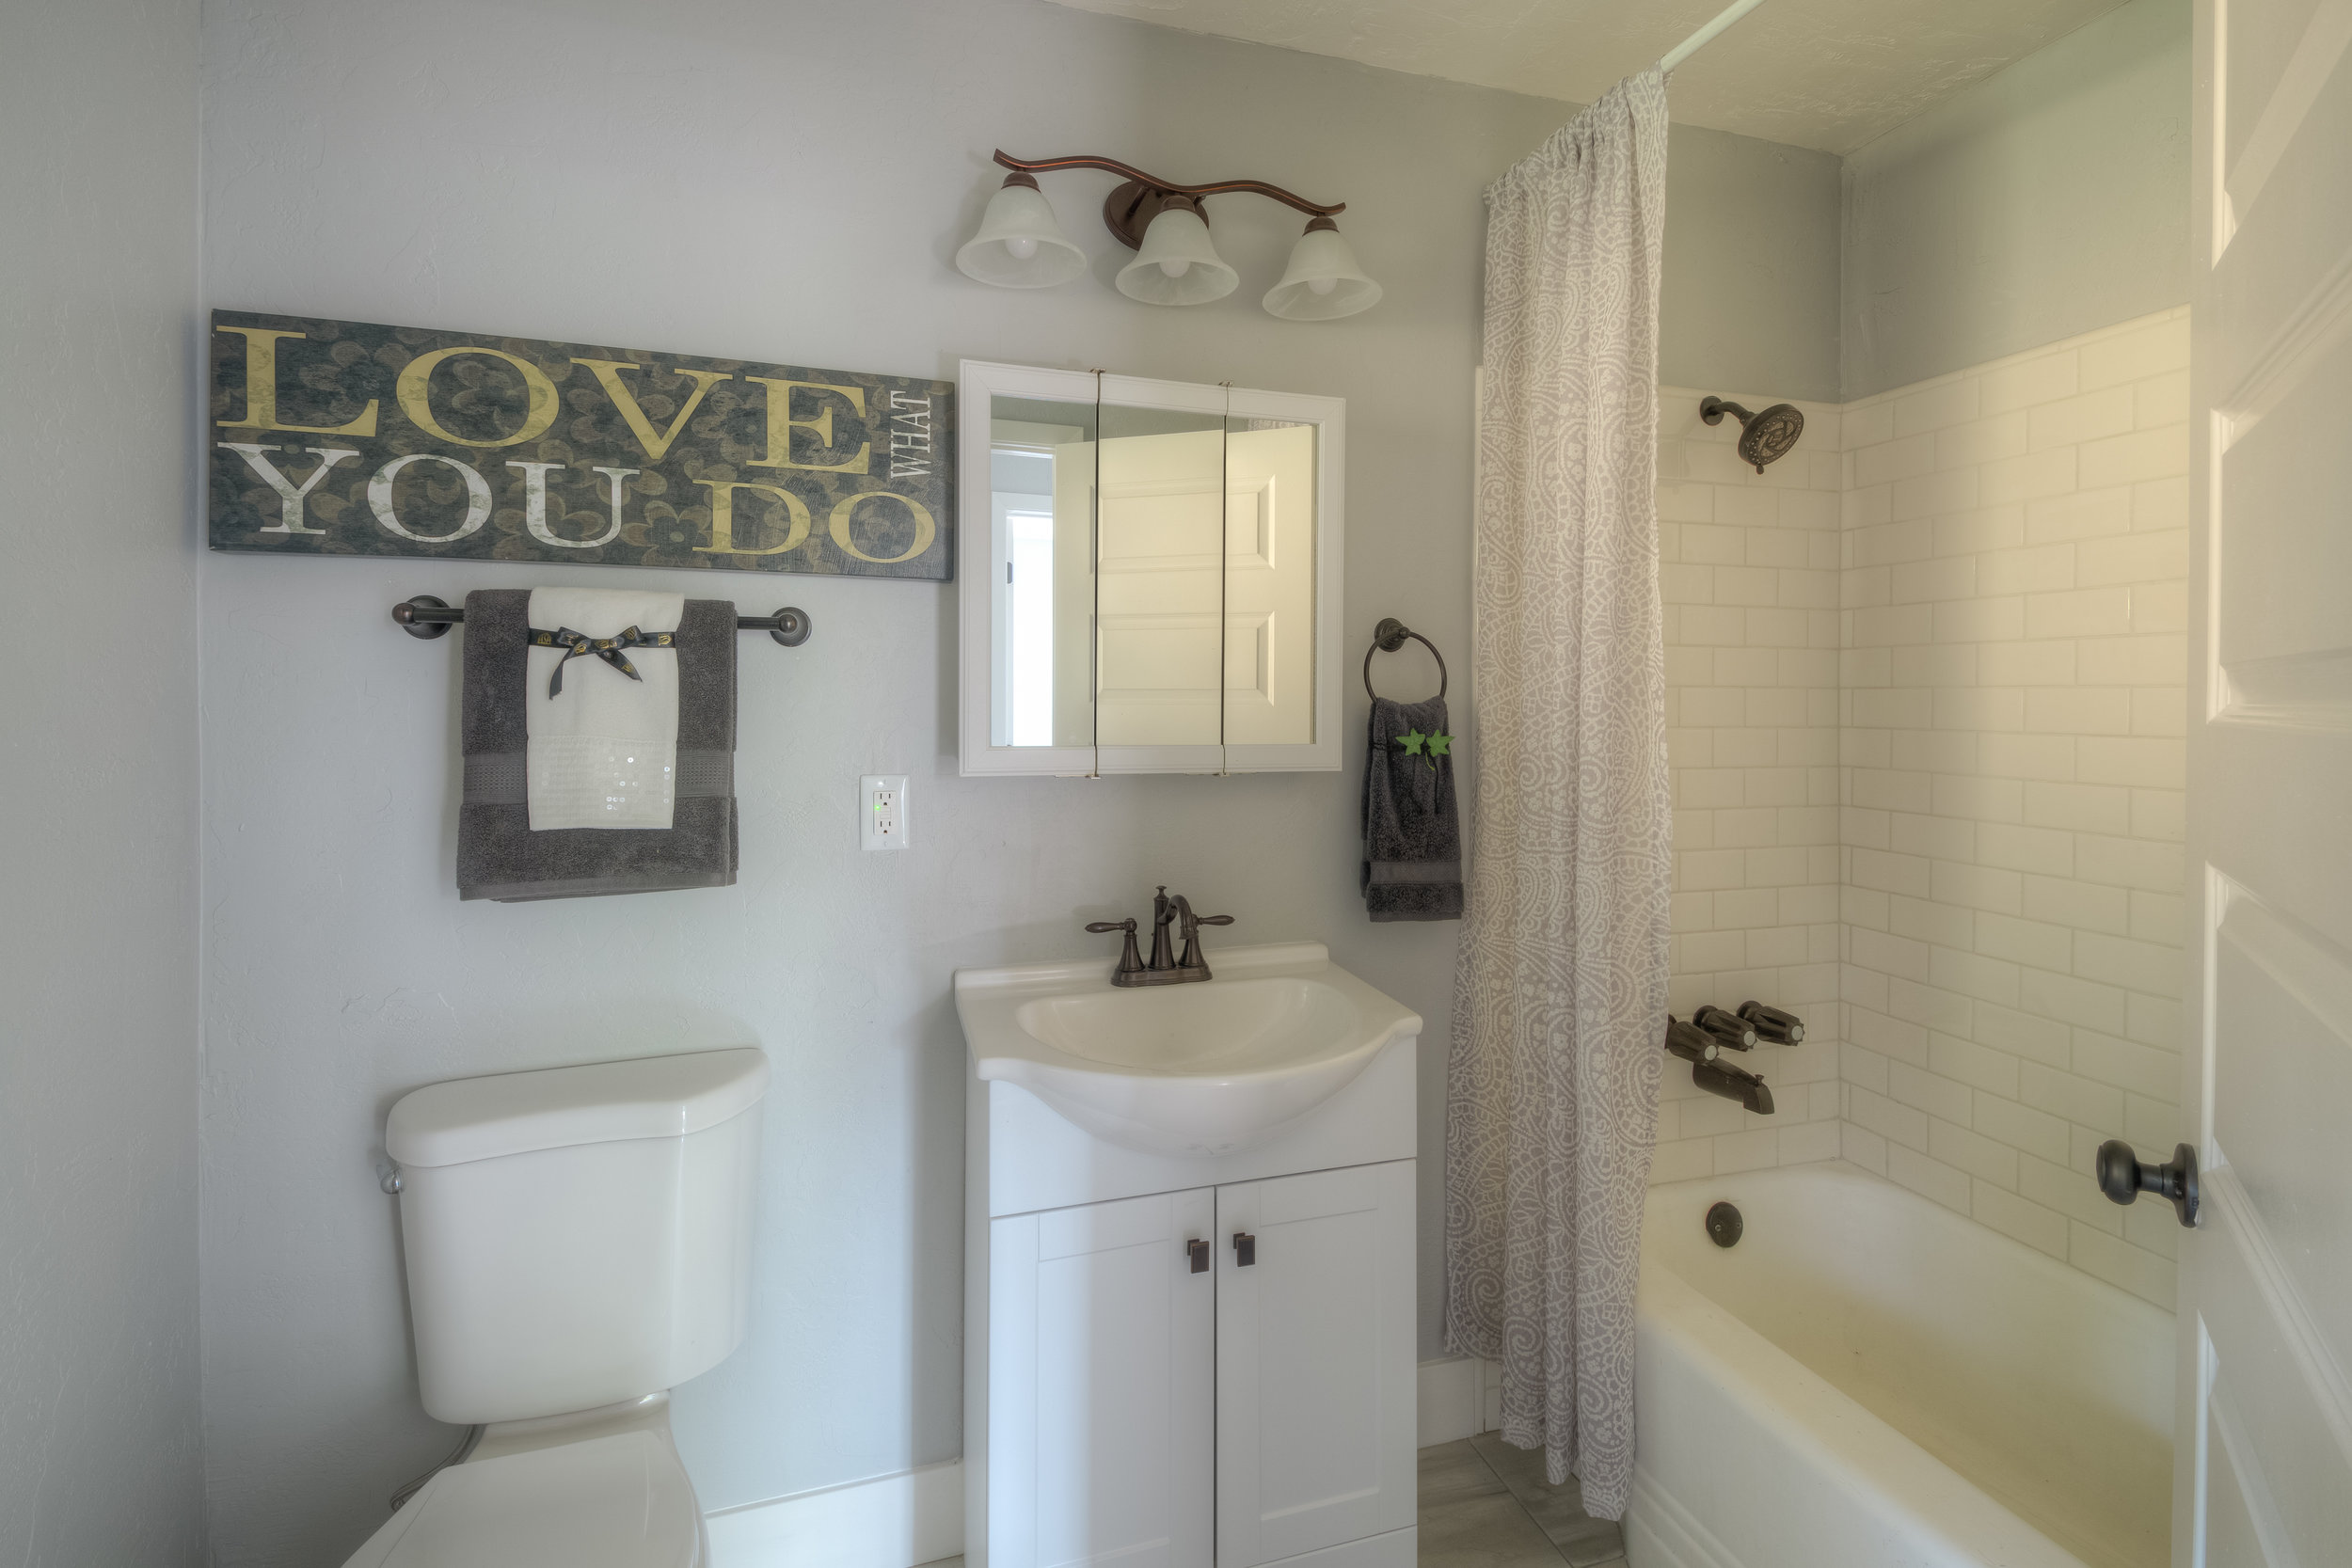 920 Neal Dow Ave 011 Bathroom 1 (after).jpg